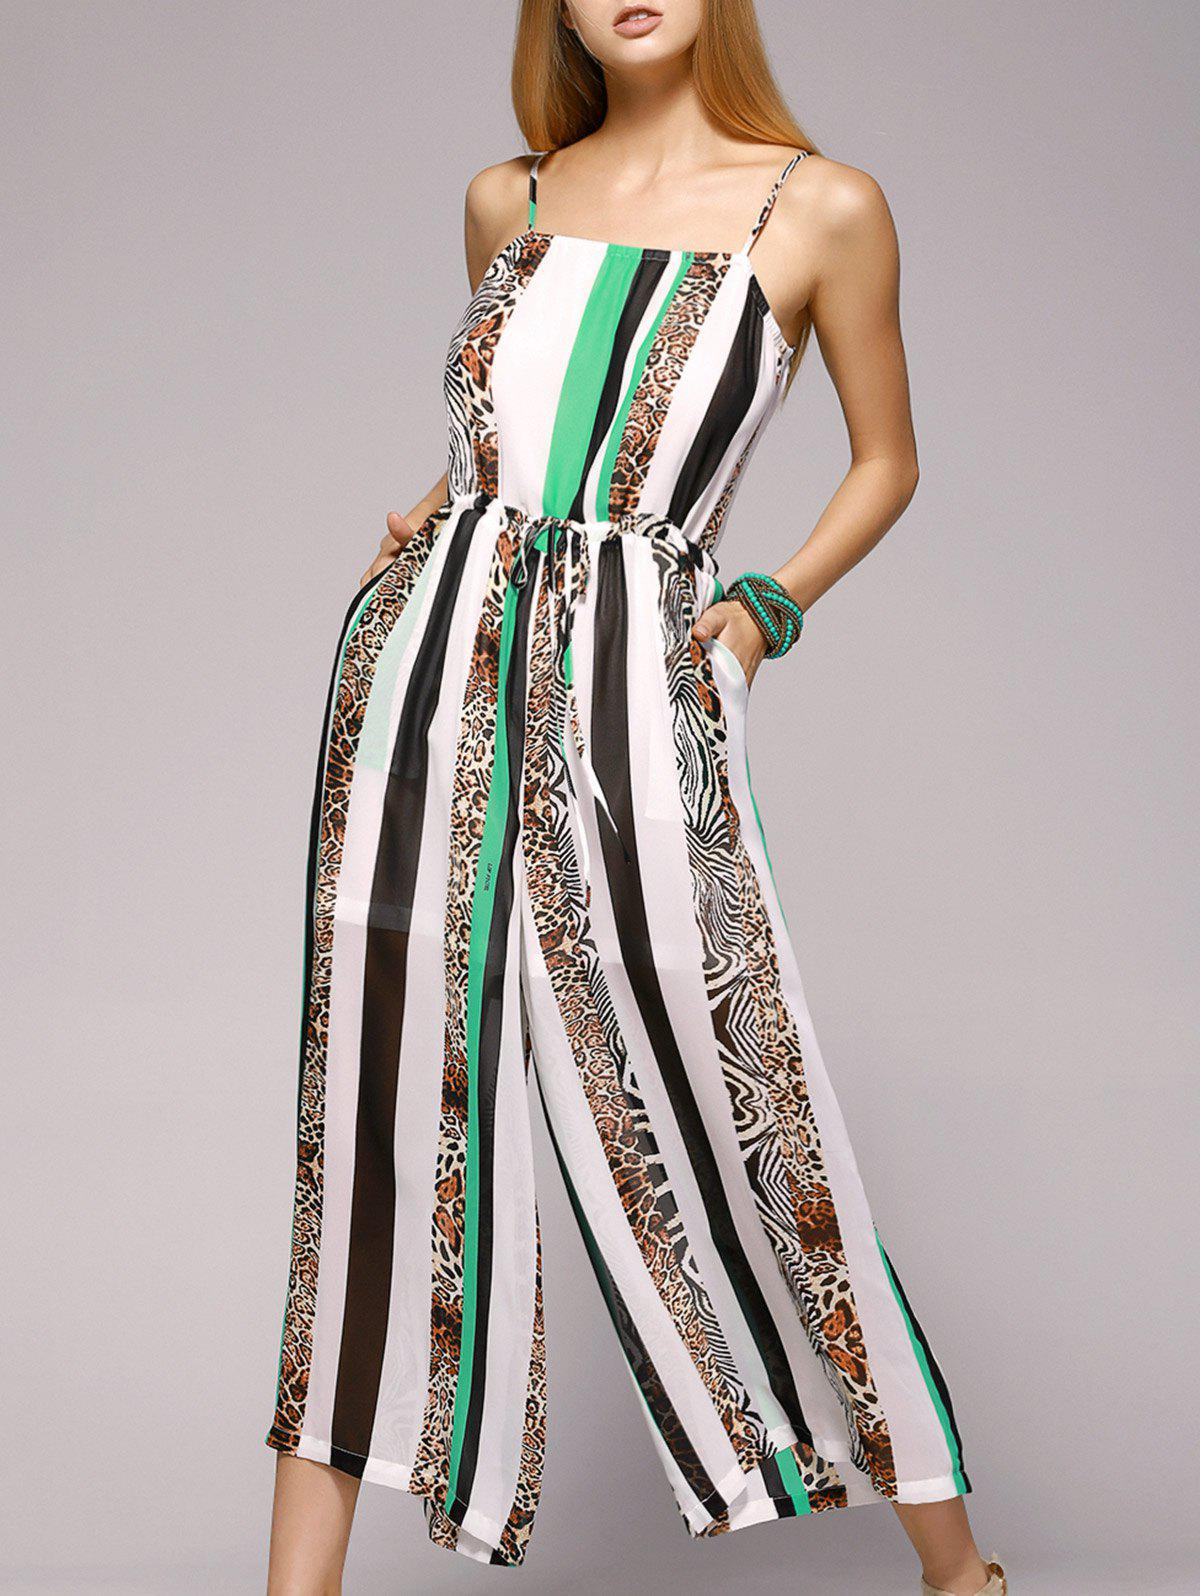 Fashioable Vertical Printing Spaghetti Strap Jumpsuit For Women - WHITE/GREEN XL